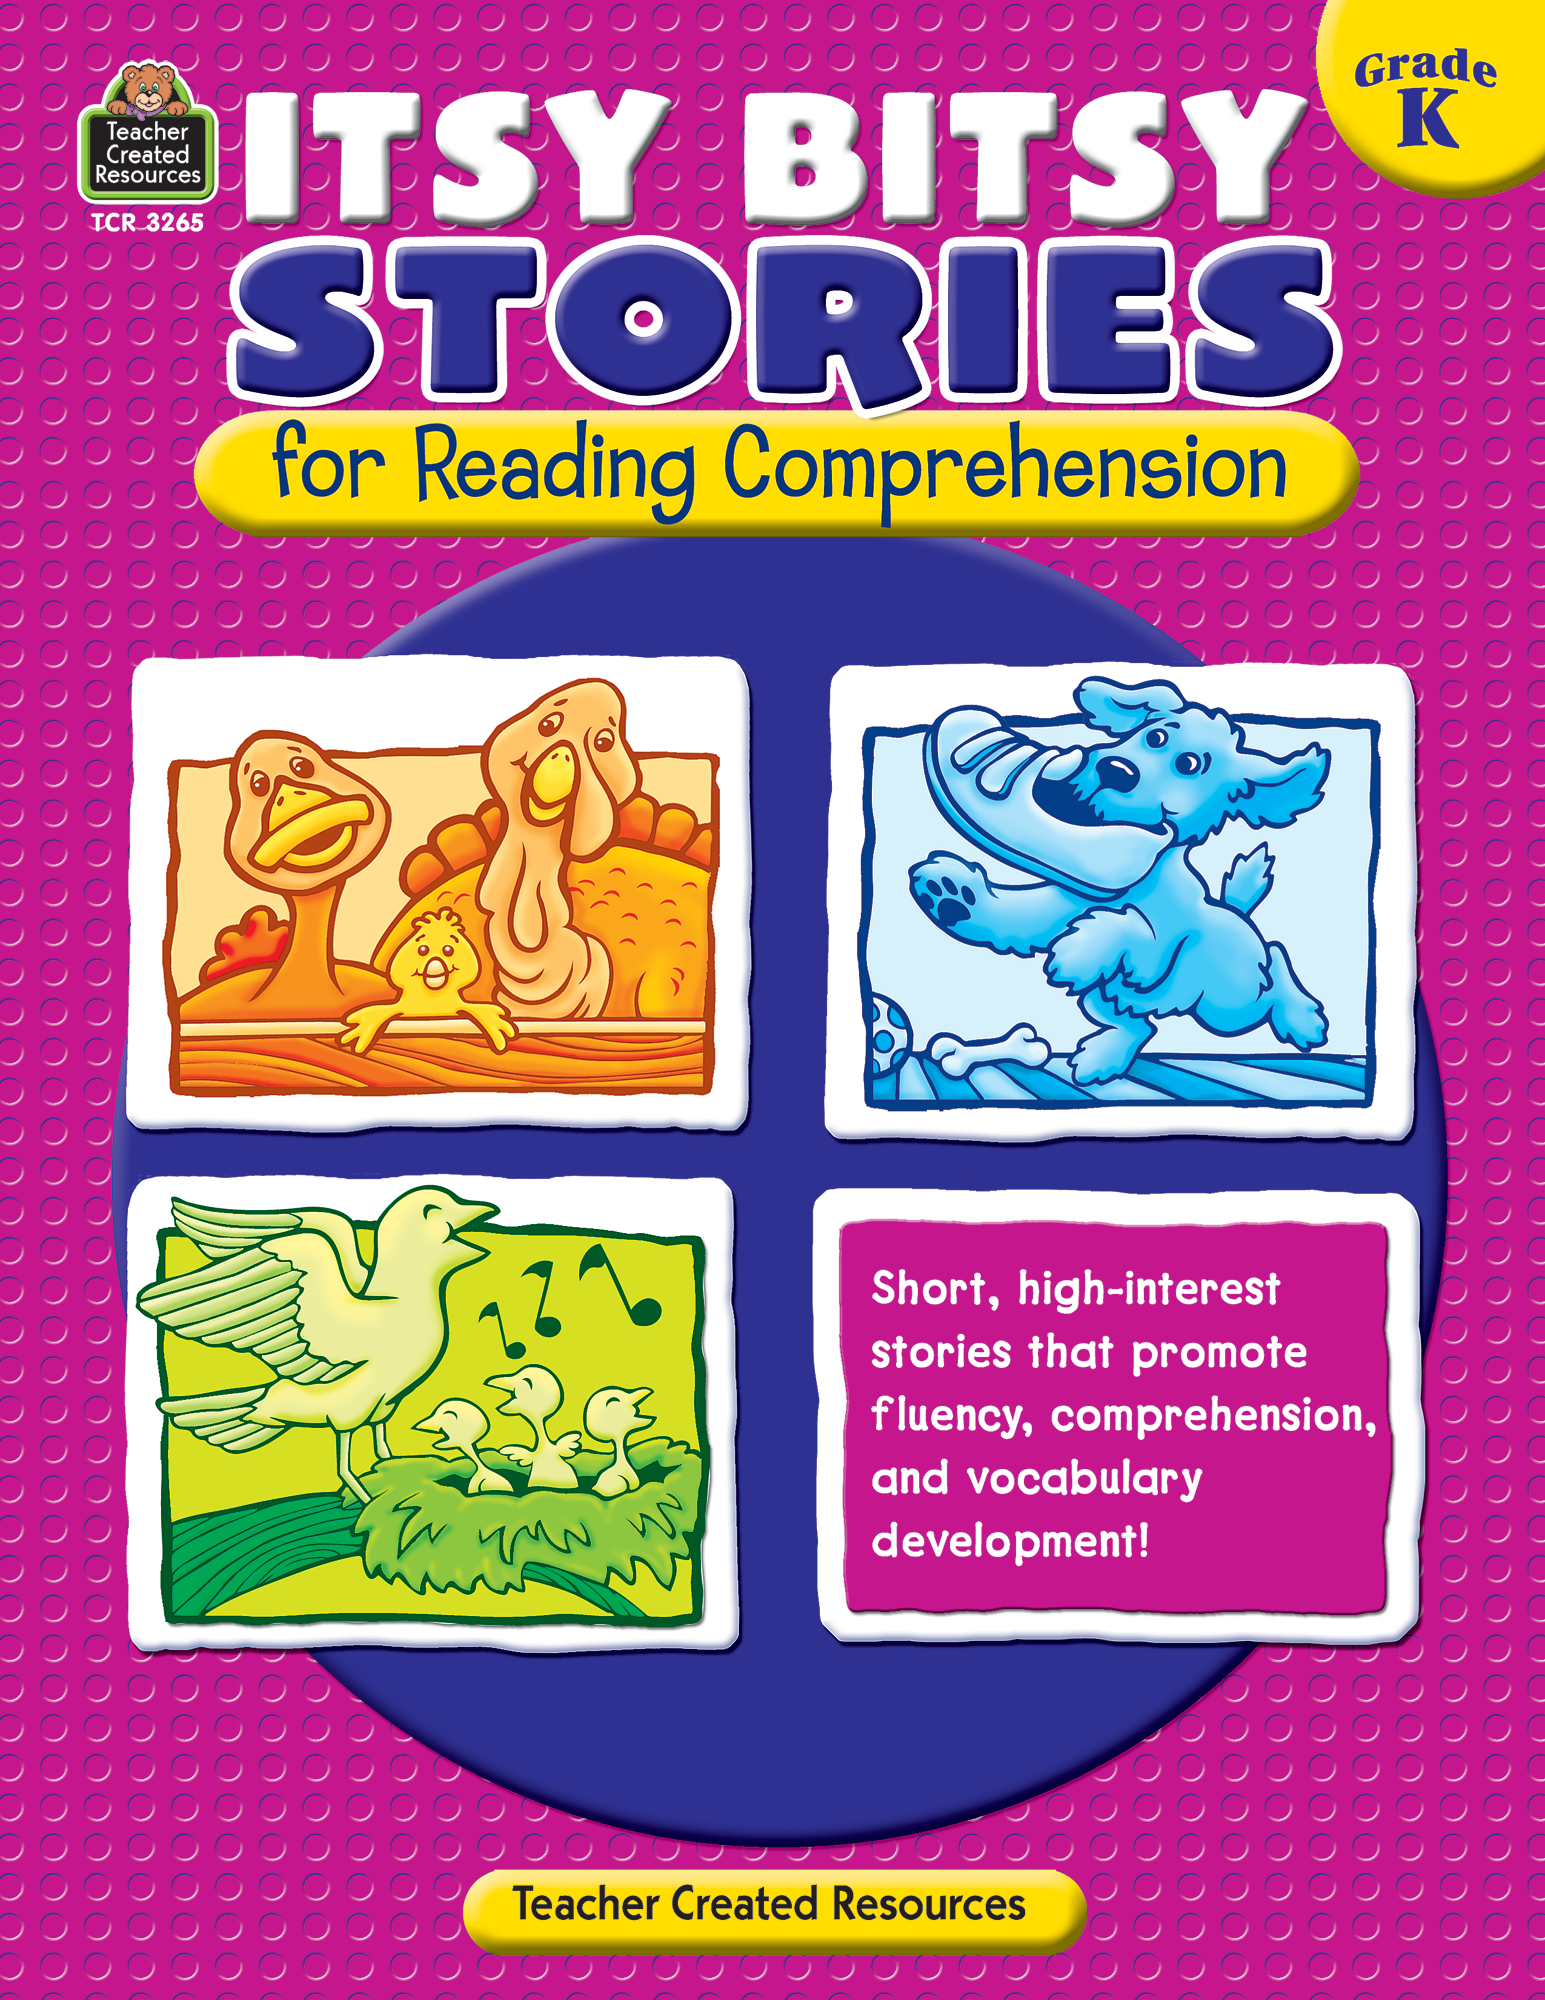 Itsy Bitsy Stories for Reading Comprehension (Gr. K)